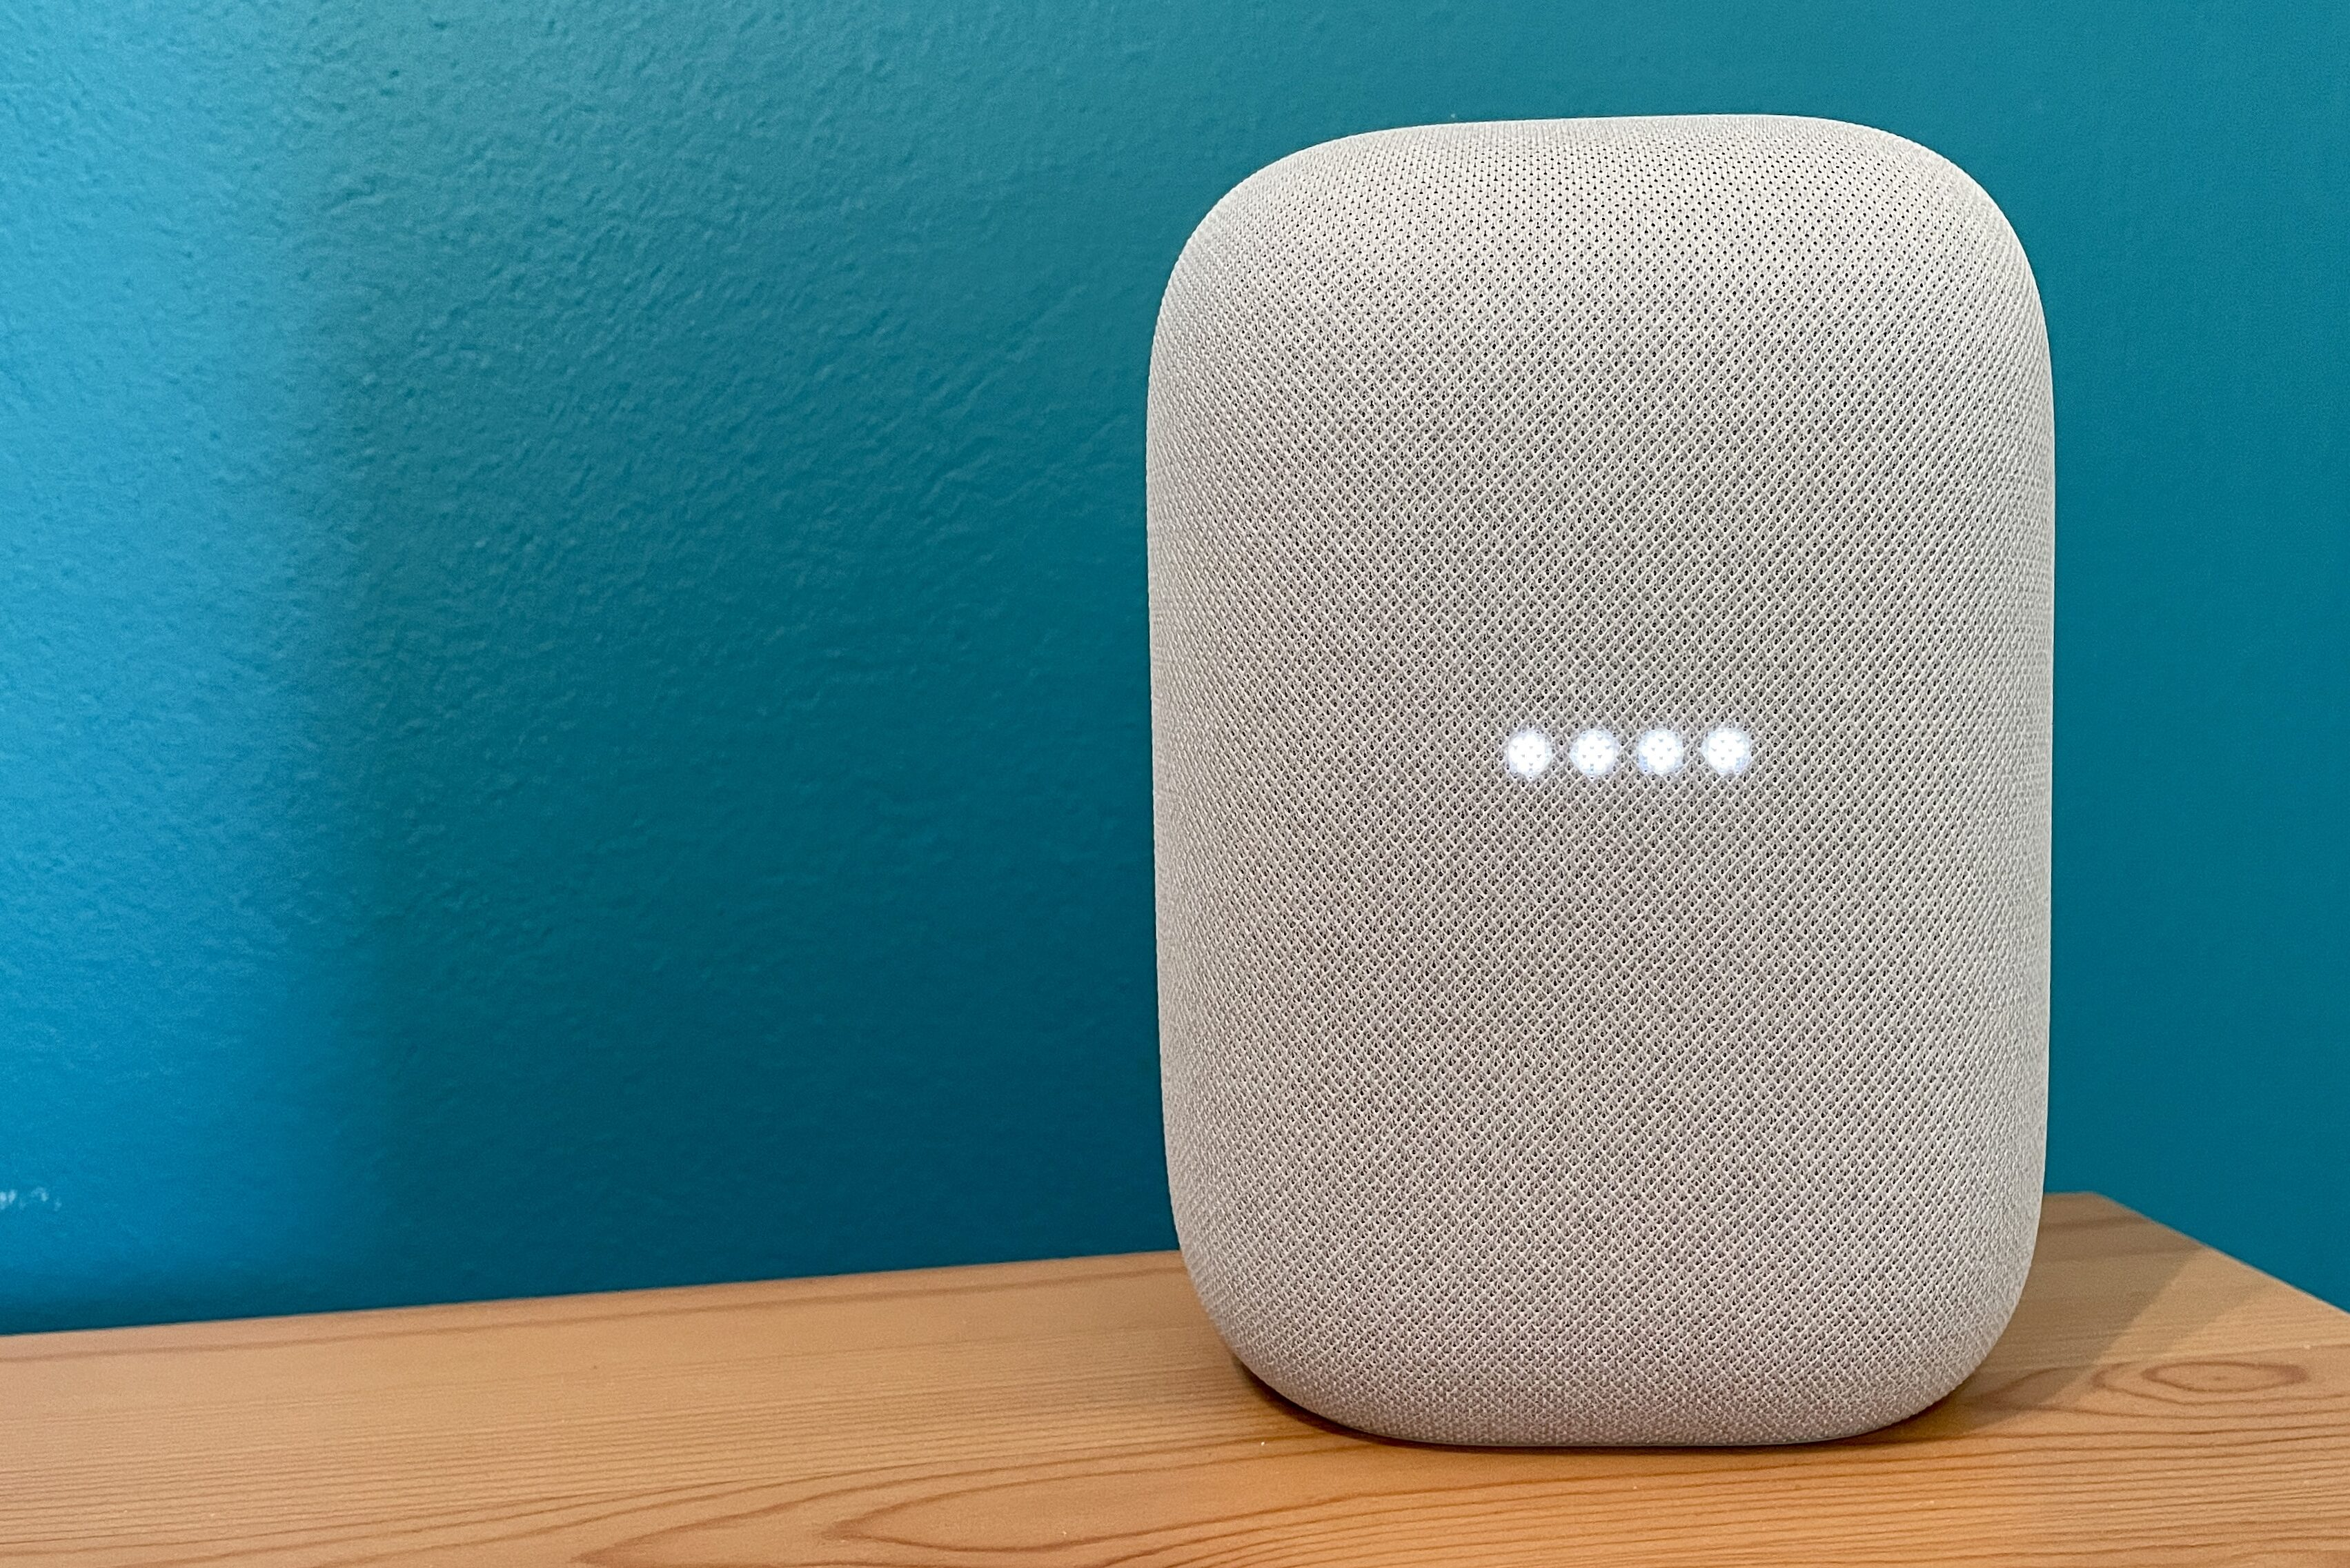 Chalk Google Home Audio against a blue background